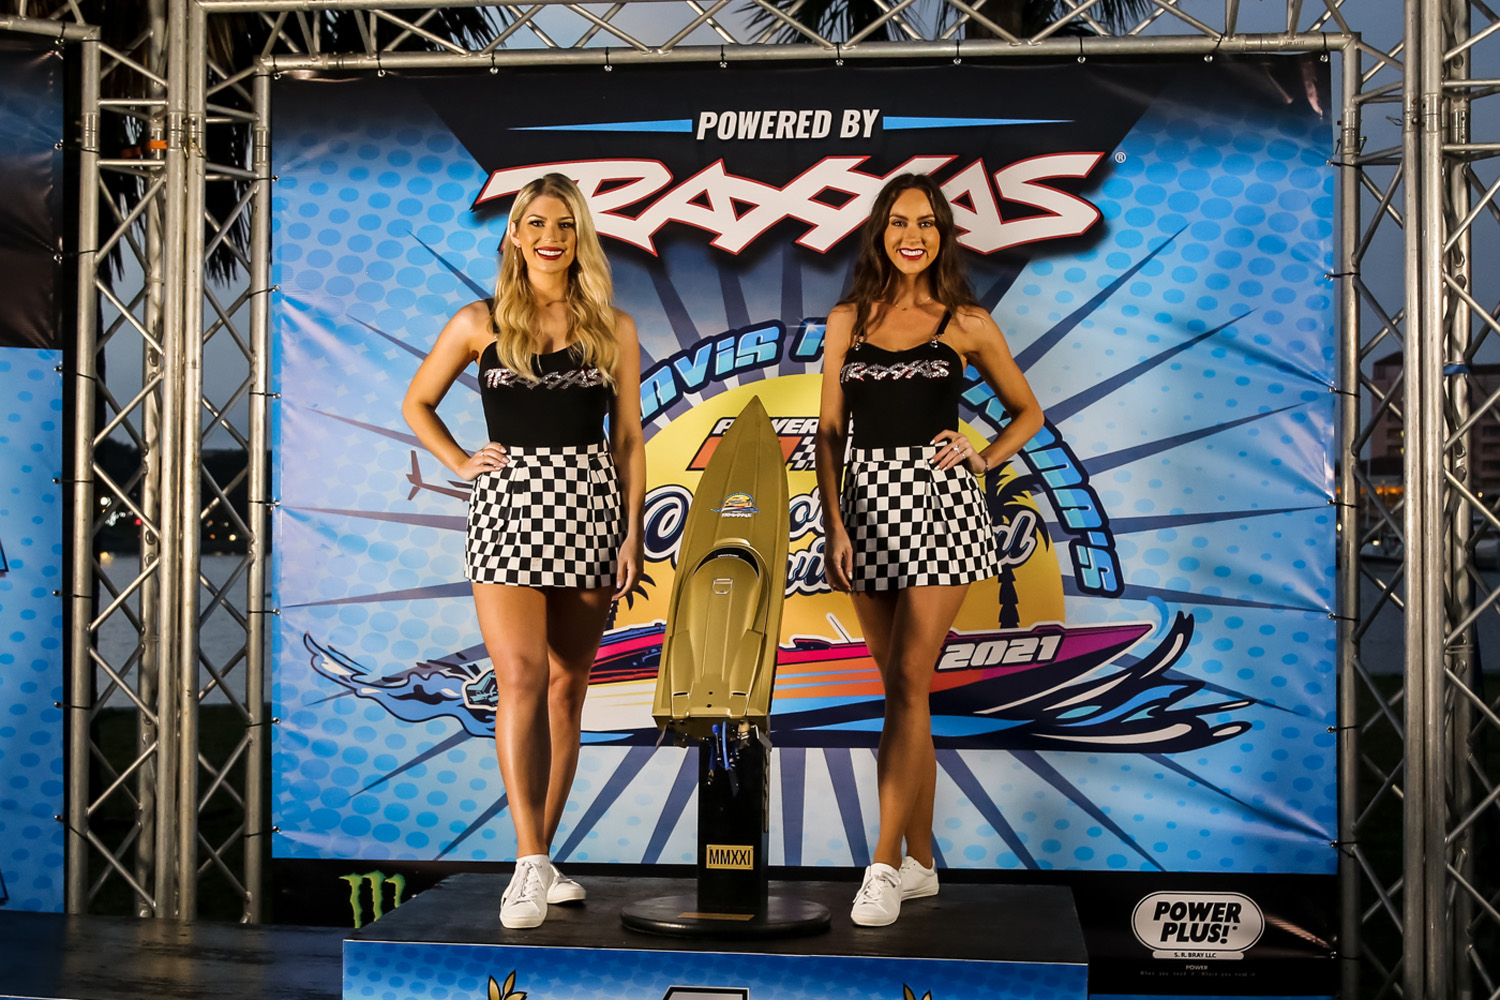 Traxxas Girls and the coveted Golden Spartan trophy